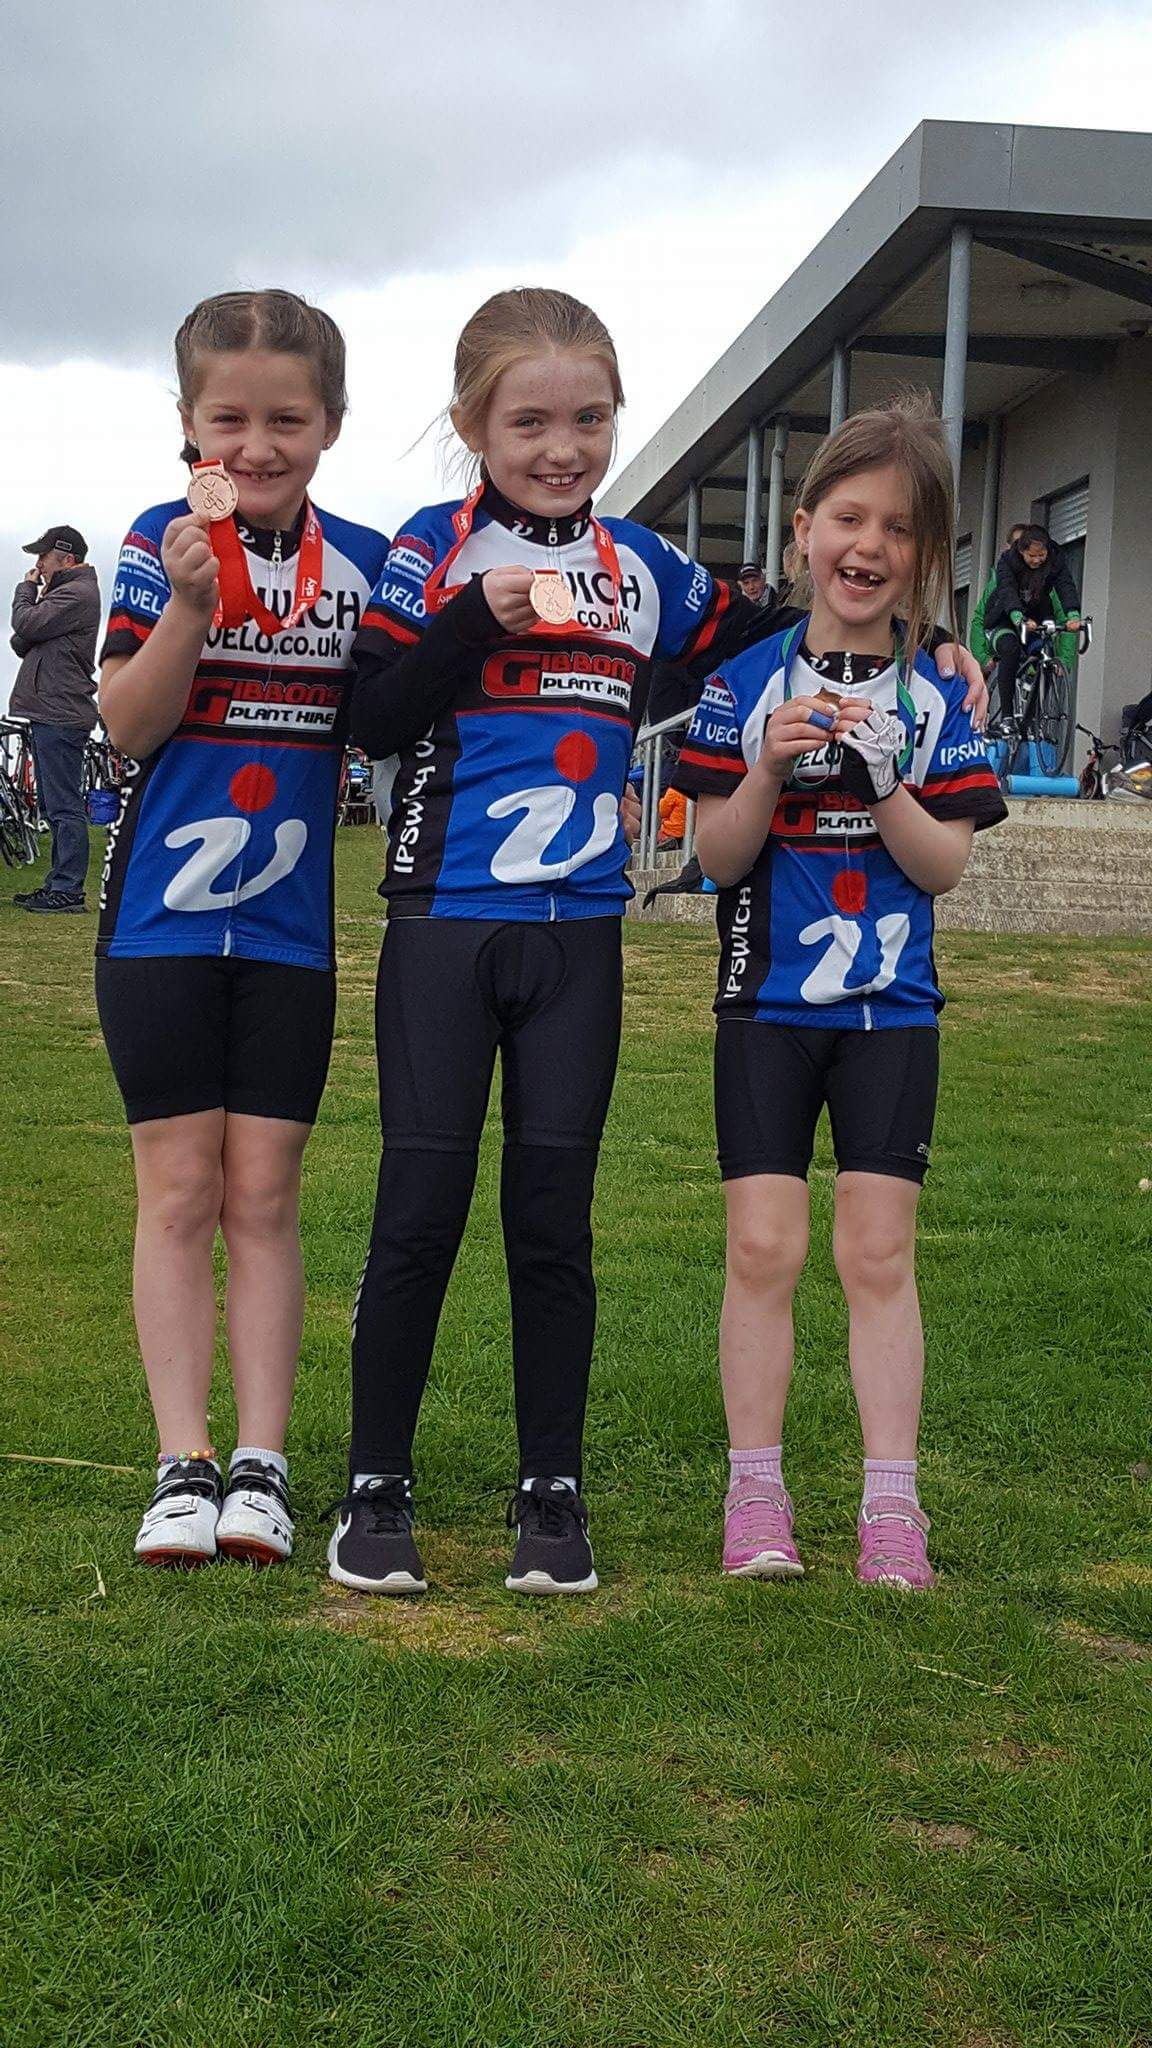 Redbridge 2017 Wins and top 3 placings for the girls